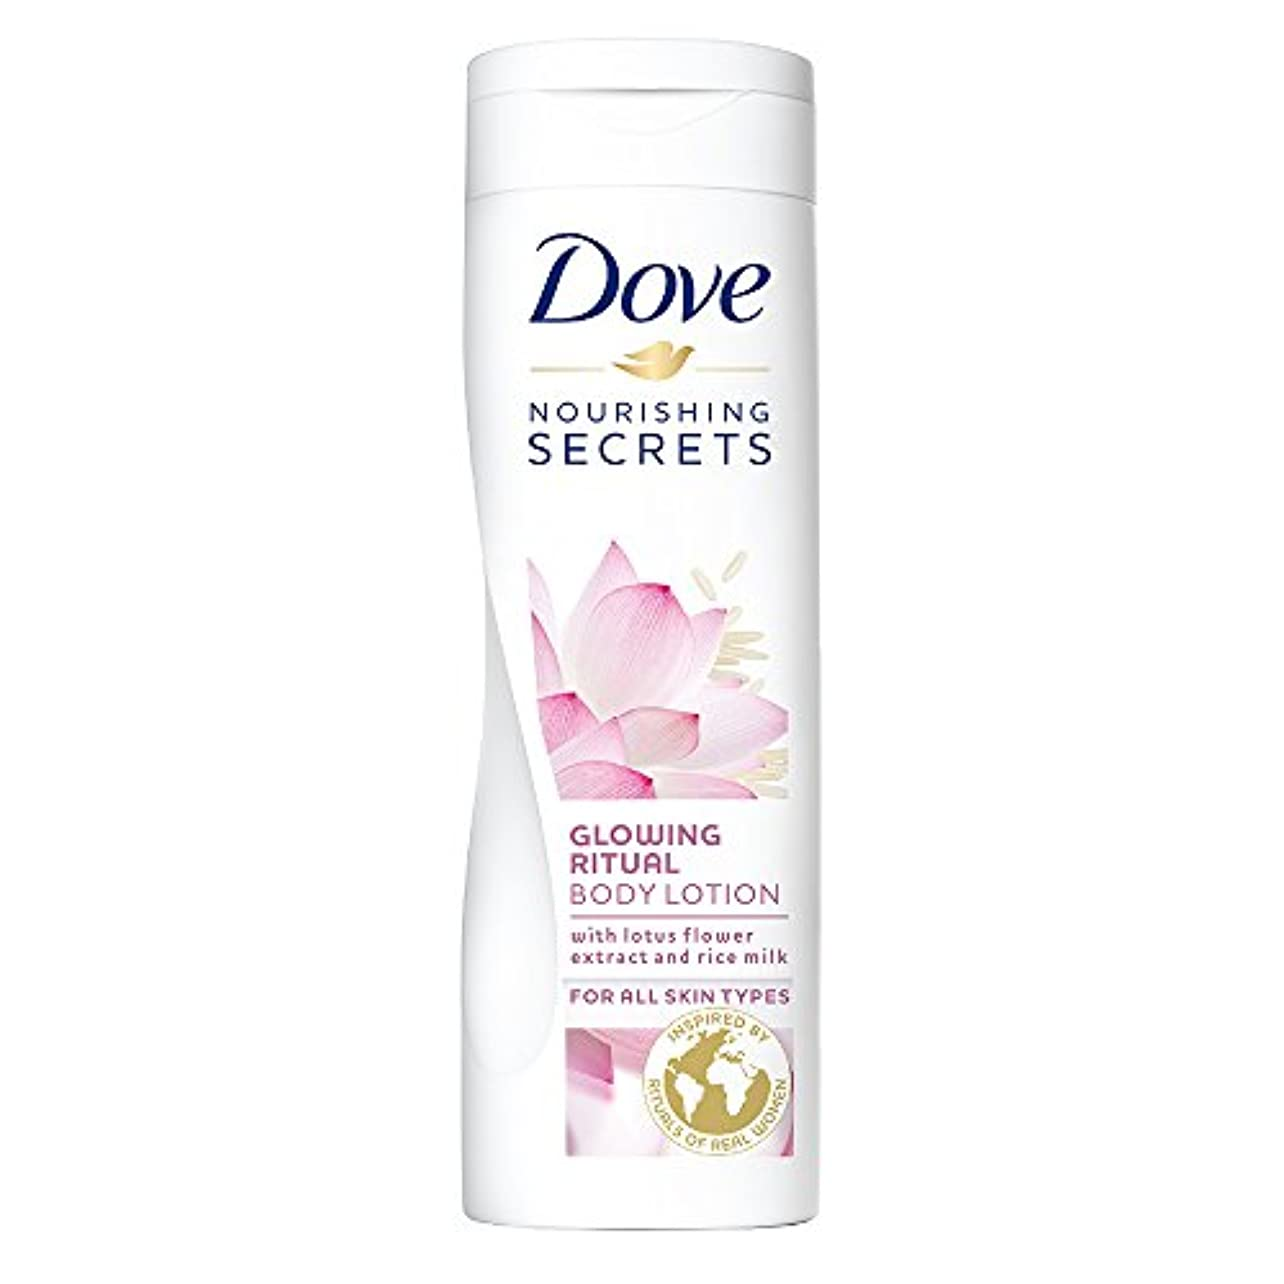 Dove Glowing Ritual Body Lotion, 250ml (Lotus flower and rice milk)